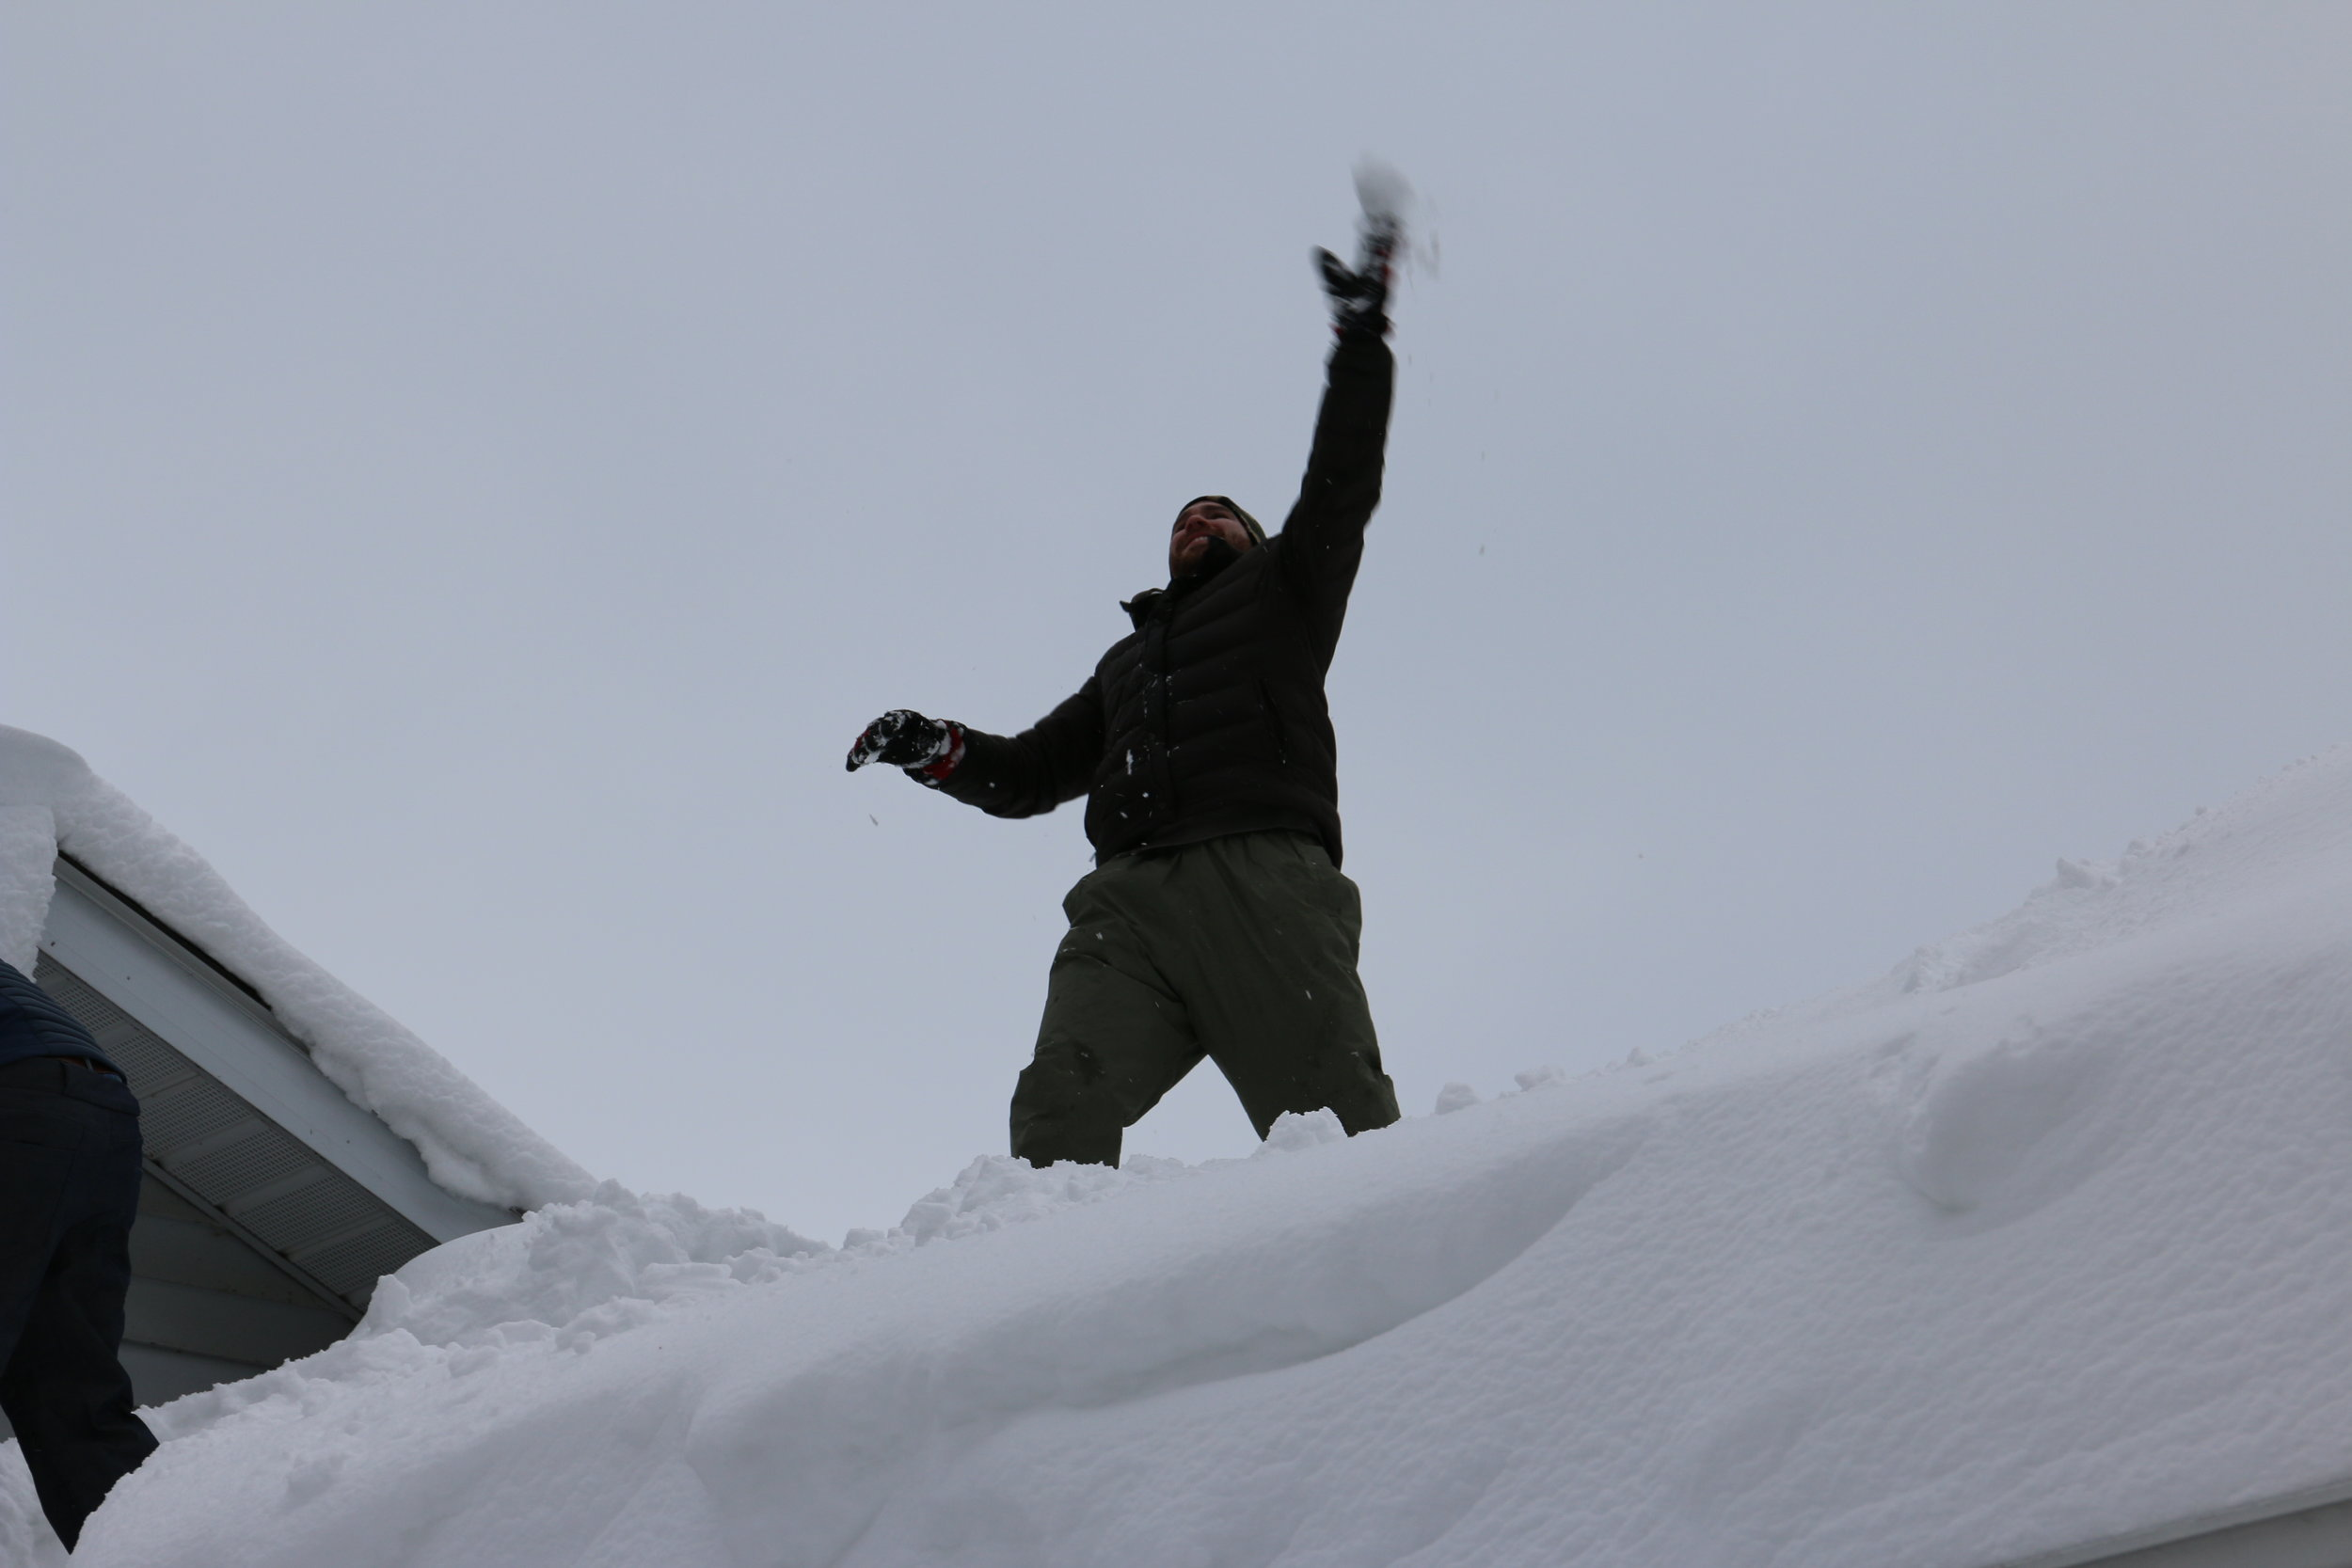 Snow throwing